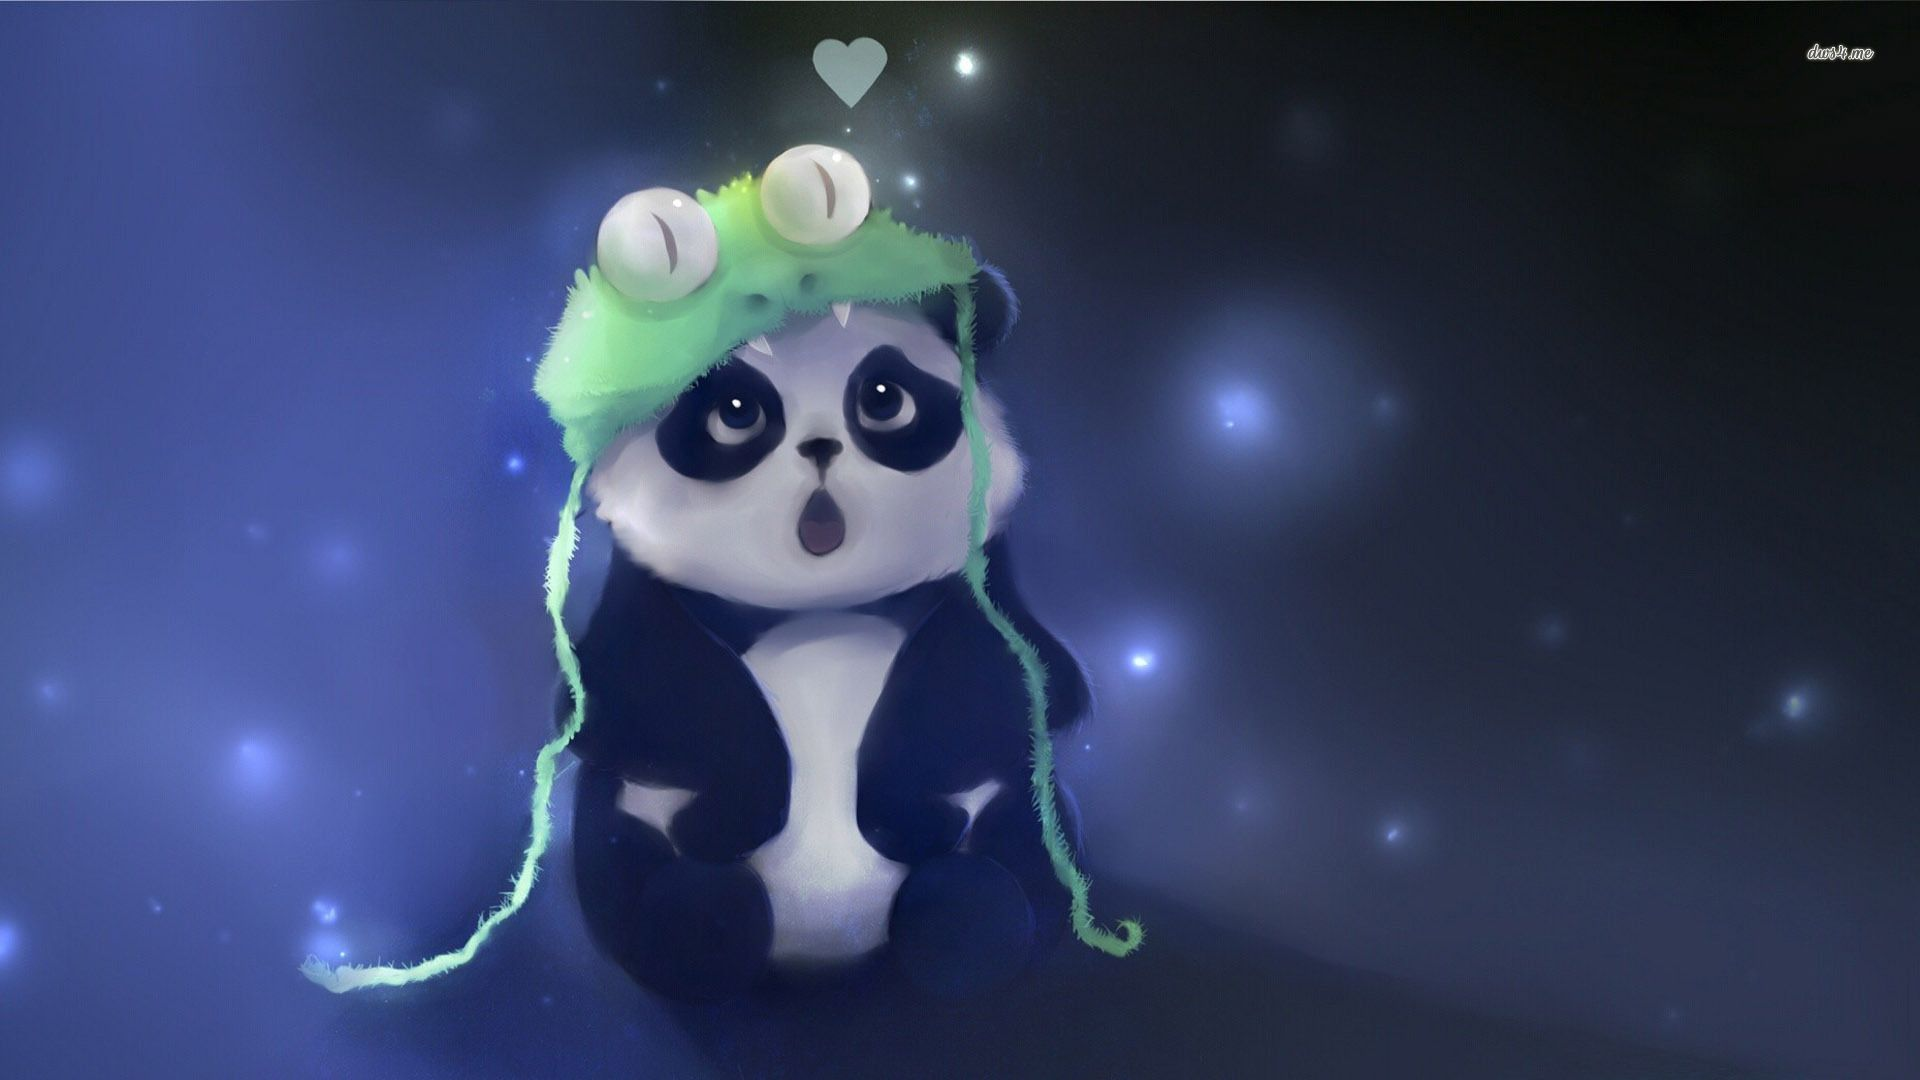 Cute Panda Wallpaper Hd Pixelstalk Panda Bobble Head Live Wallpaper